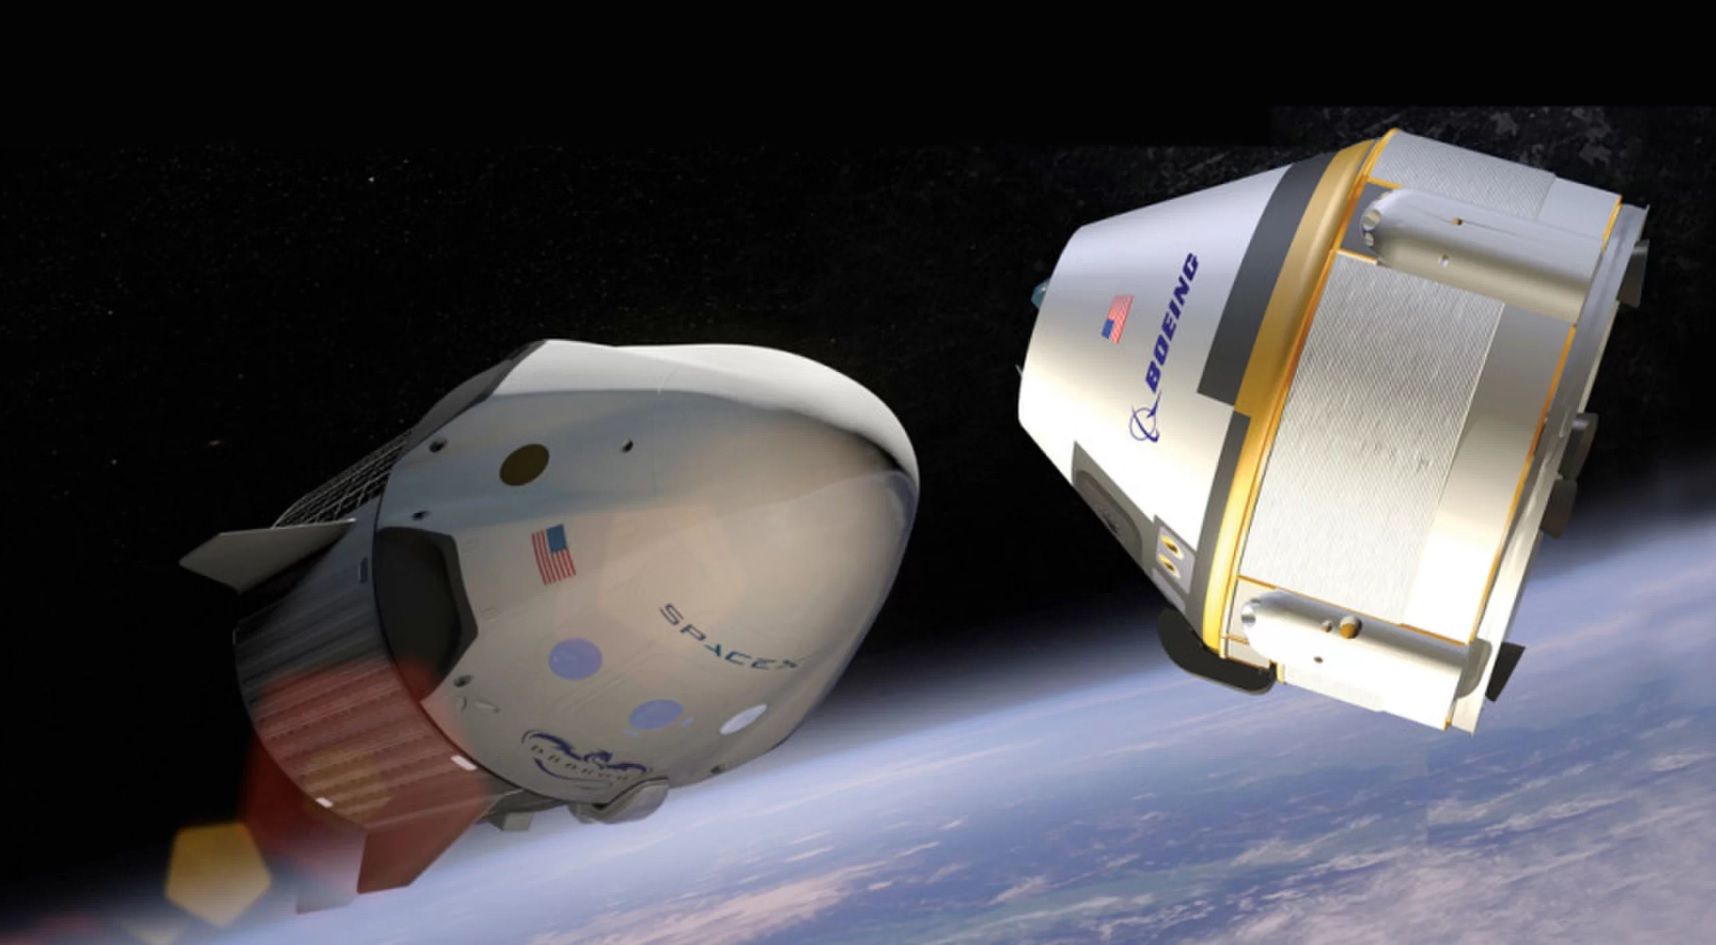 NASA will announce the first spacecraft SpaceX Crew Dragon and Boeing CST-100 Cockpit